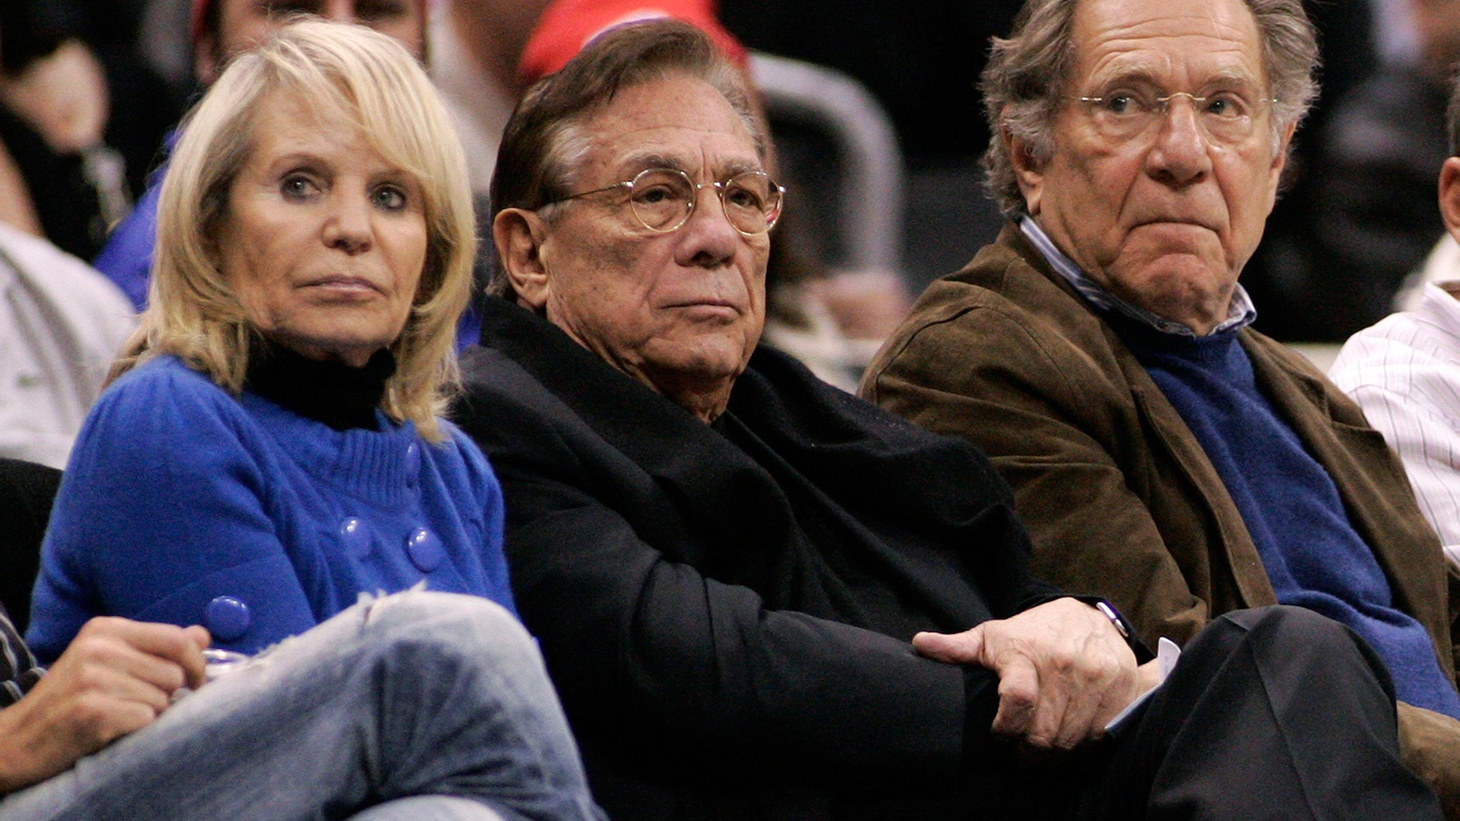 The reputation of LA Clippers' owner Donald Sterling reached a new low this weekend, with allegations of racist comments made in a phone conversation.